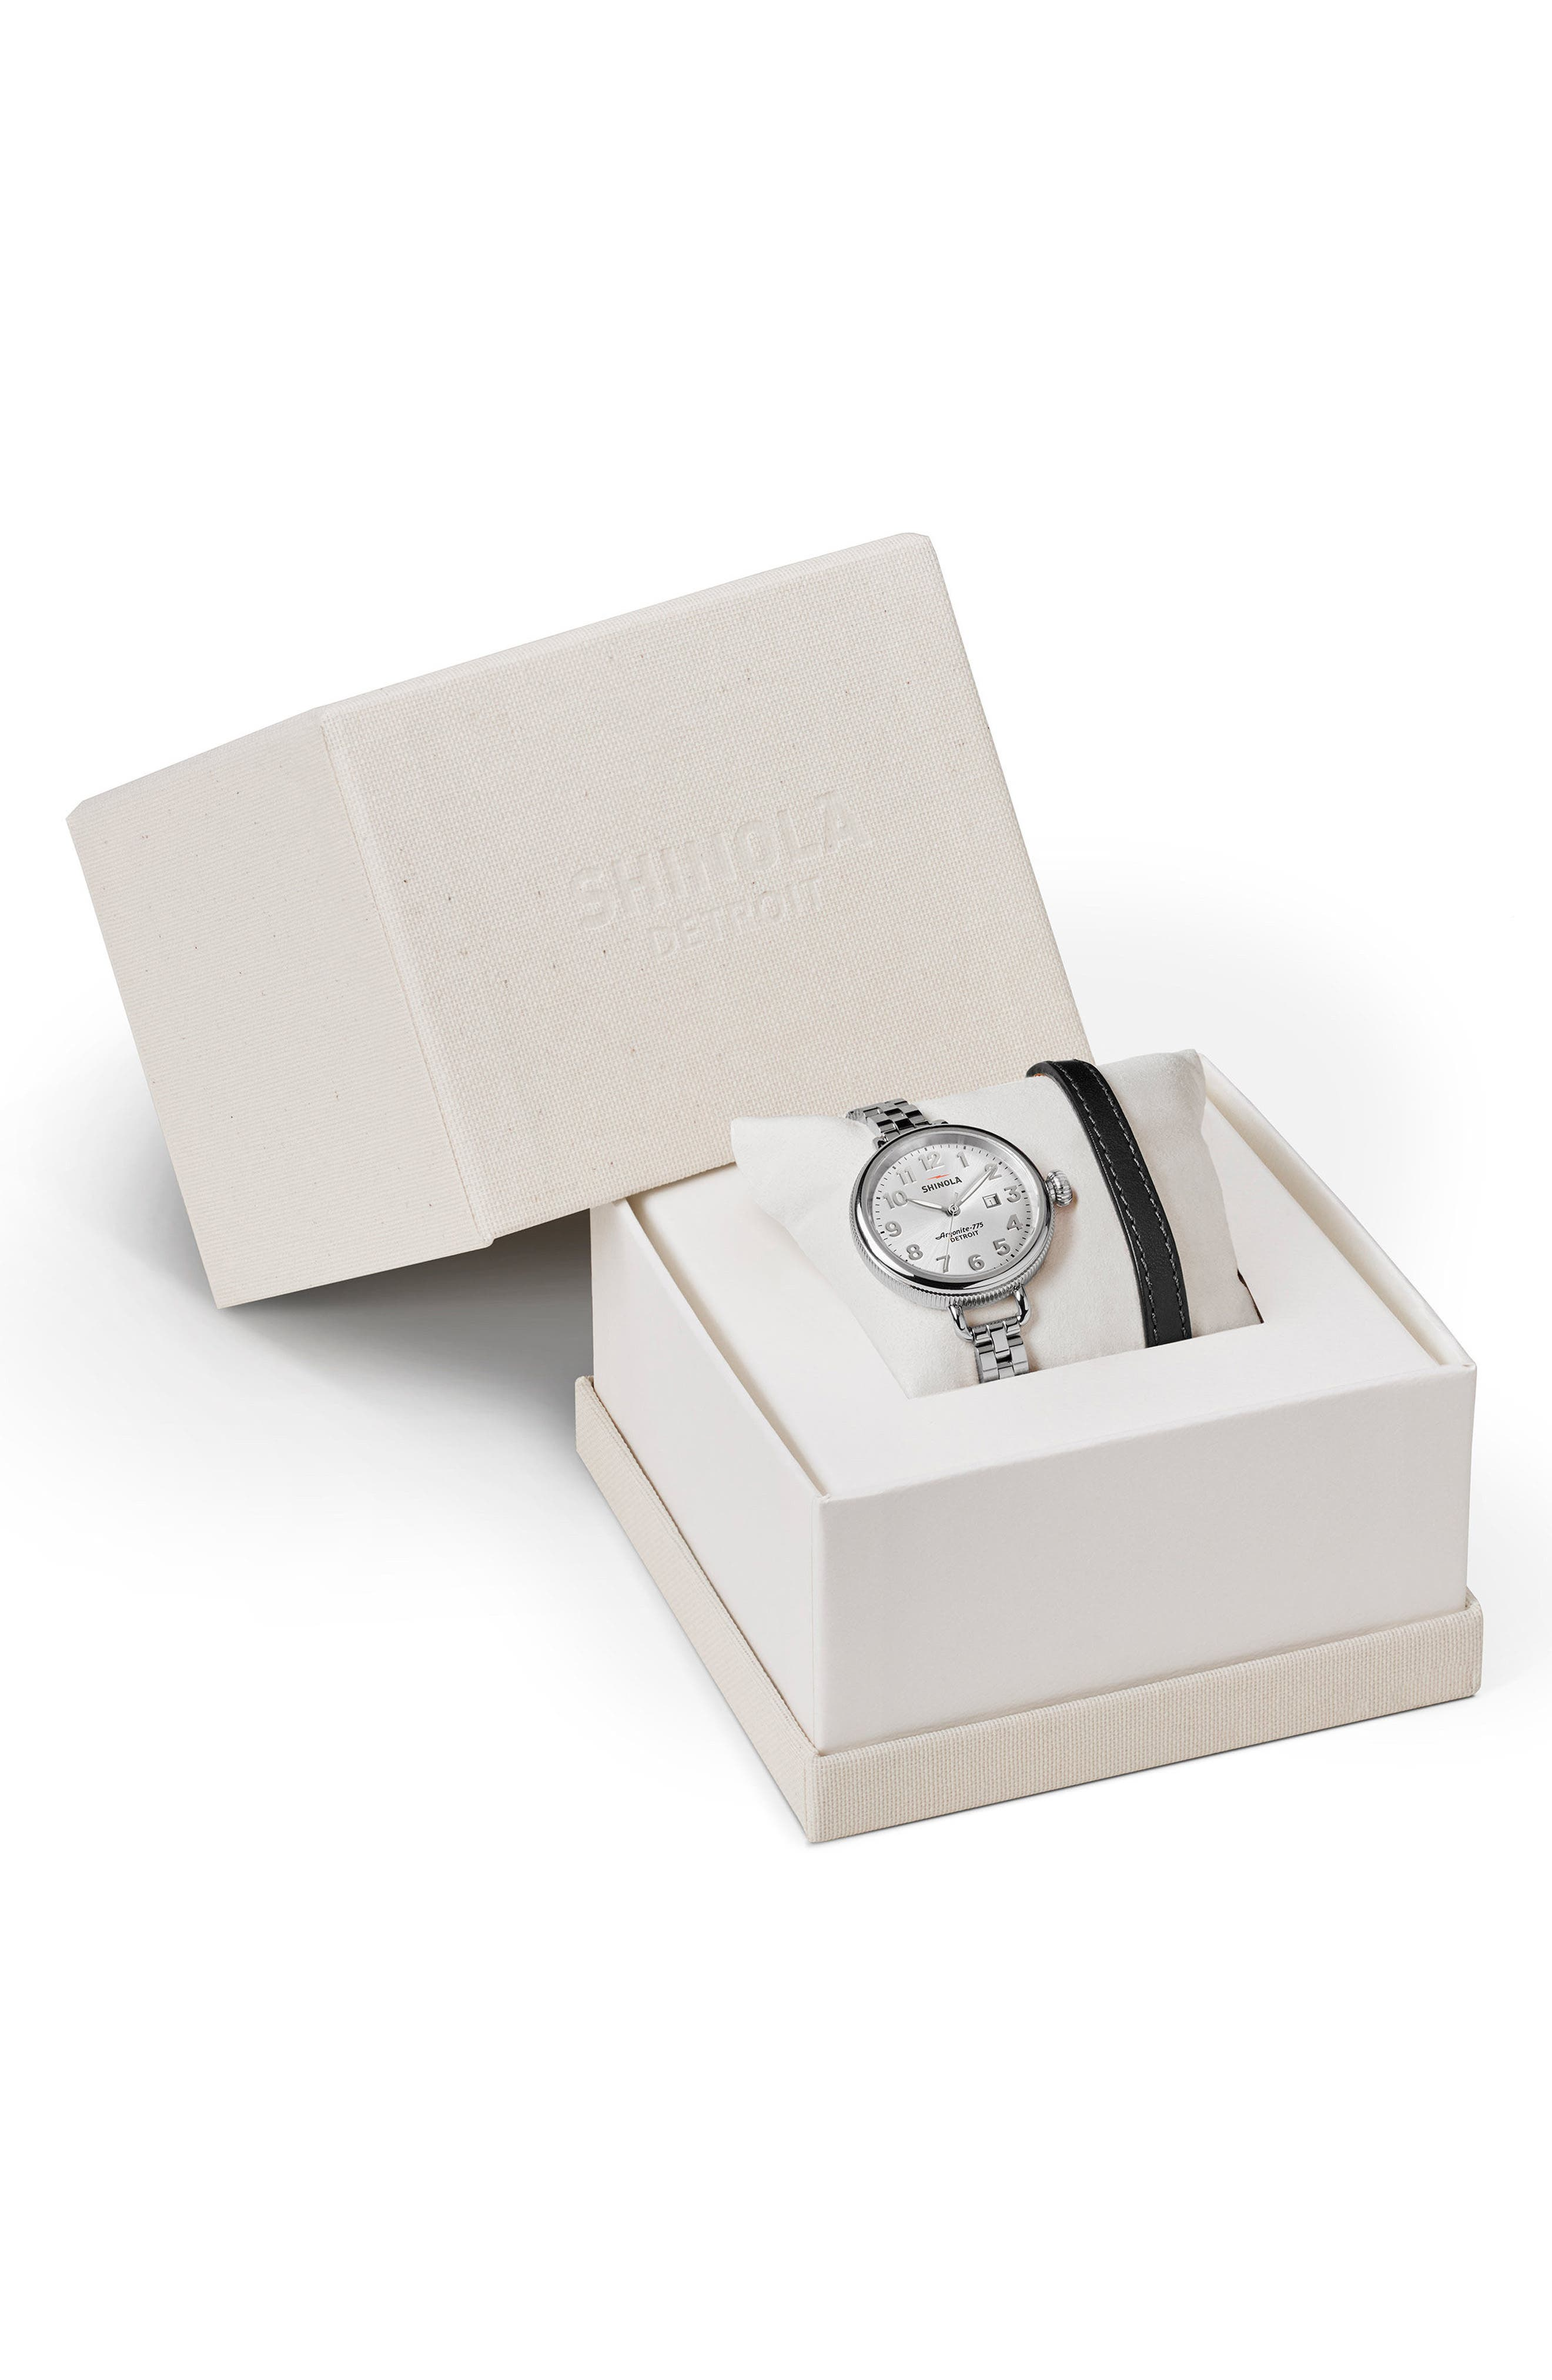 Alternate Image 1 Selected - Shinola The Birdy Watch Gift Set, 34mm